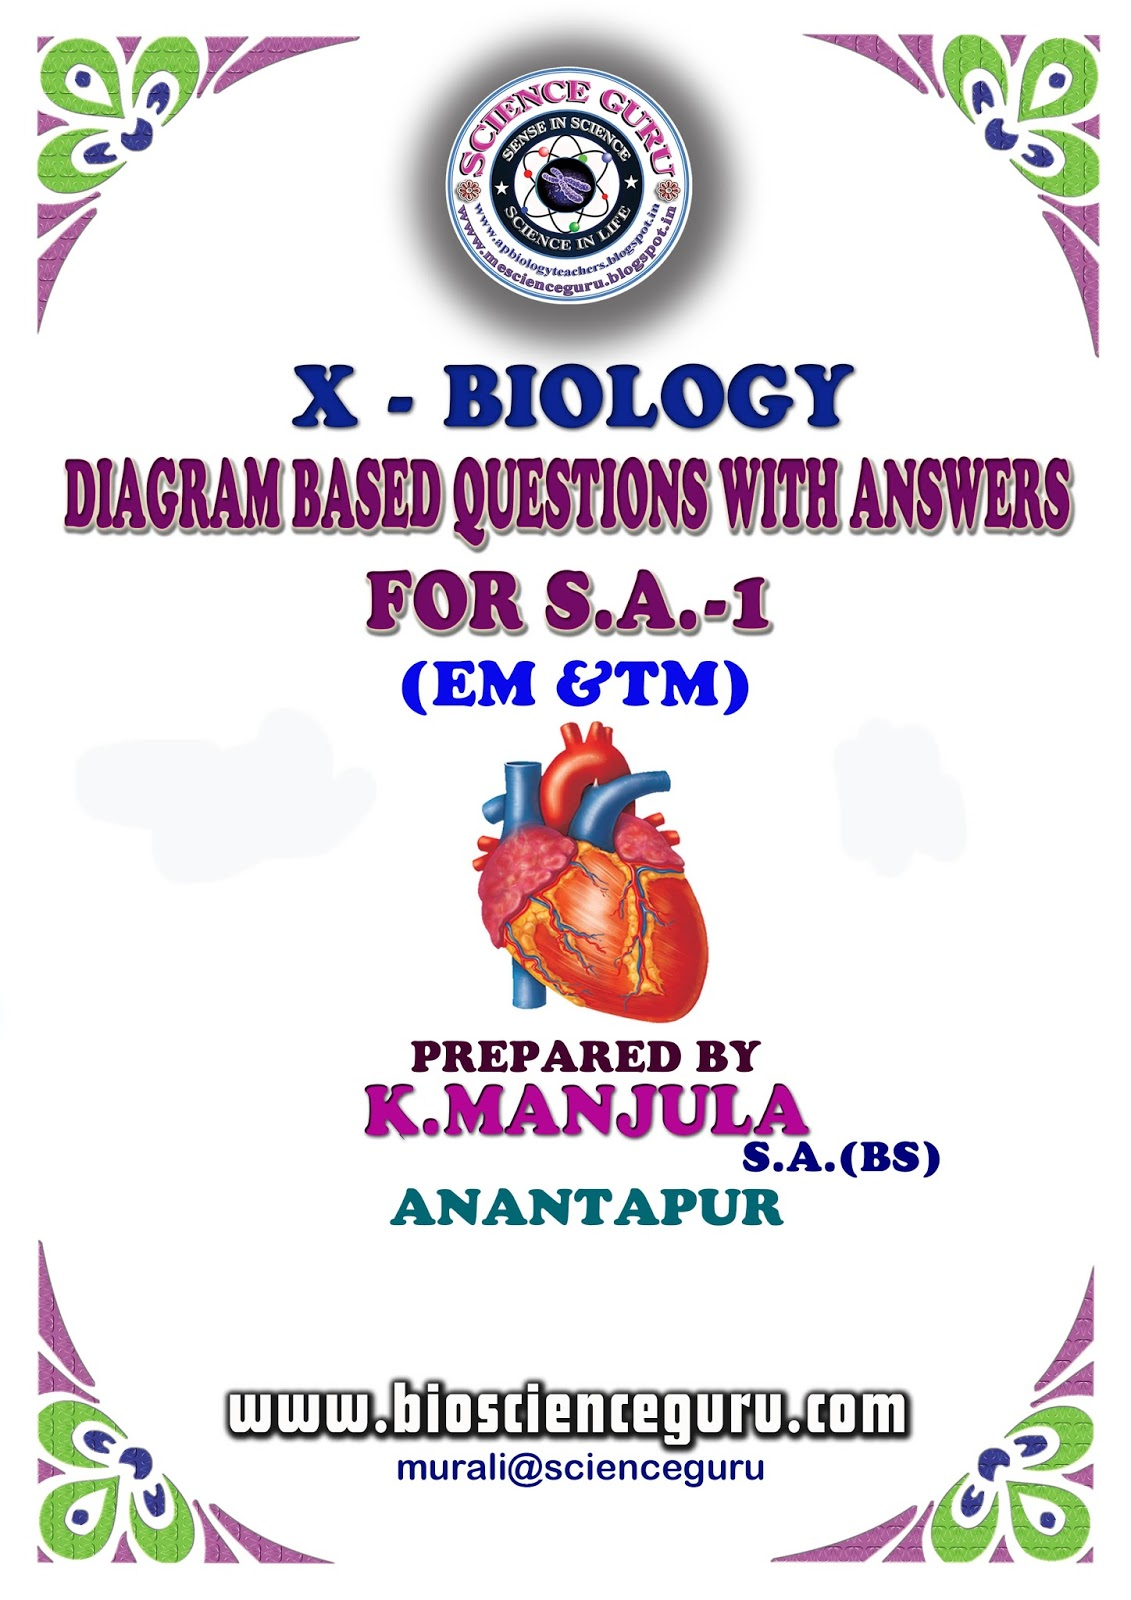 10th class diagram based questions and answers for sa 1 this booklet of diagram based questions with answers provide the questions under third and fifth competency of summative examination ccuart Image collections